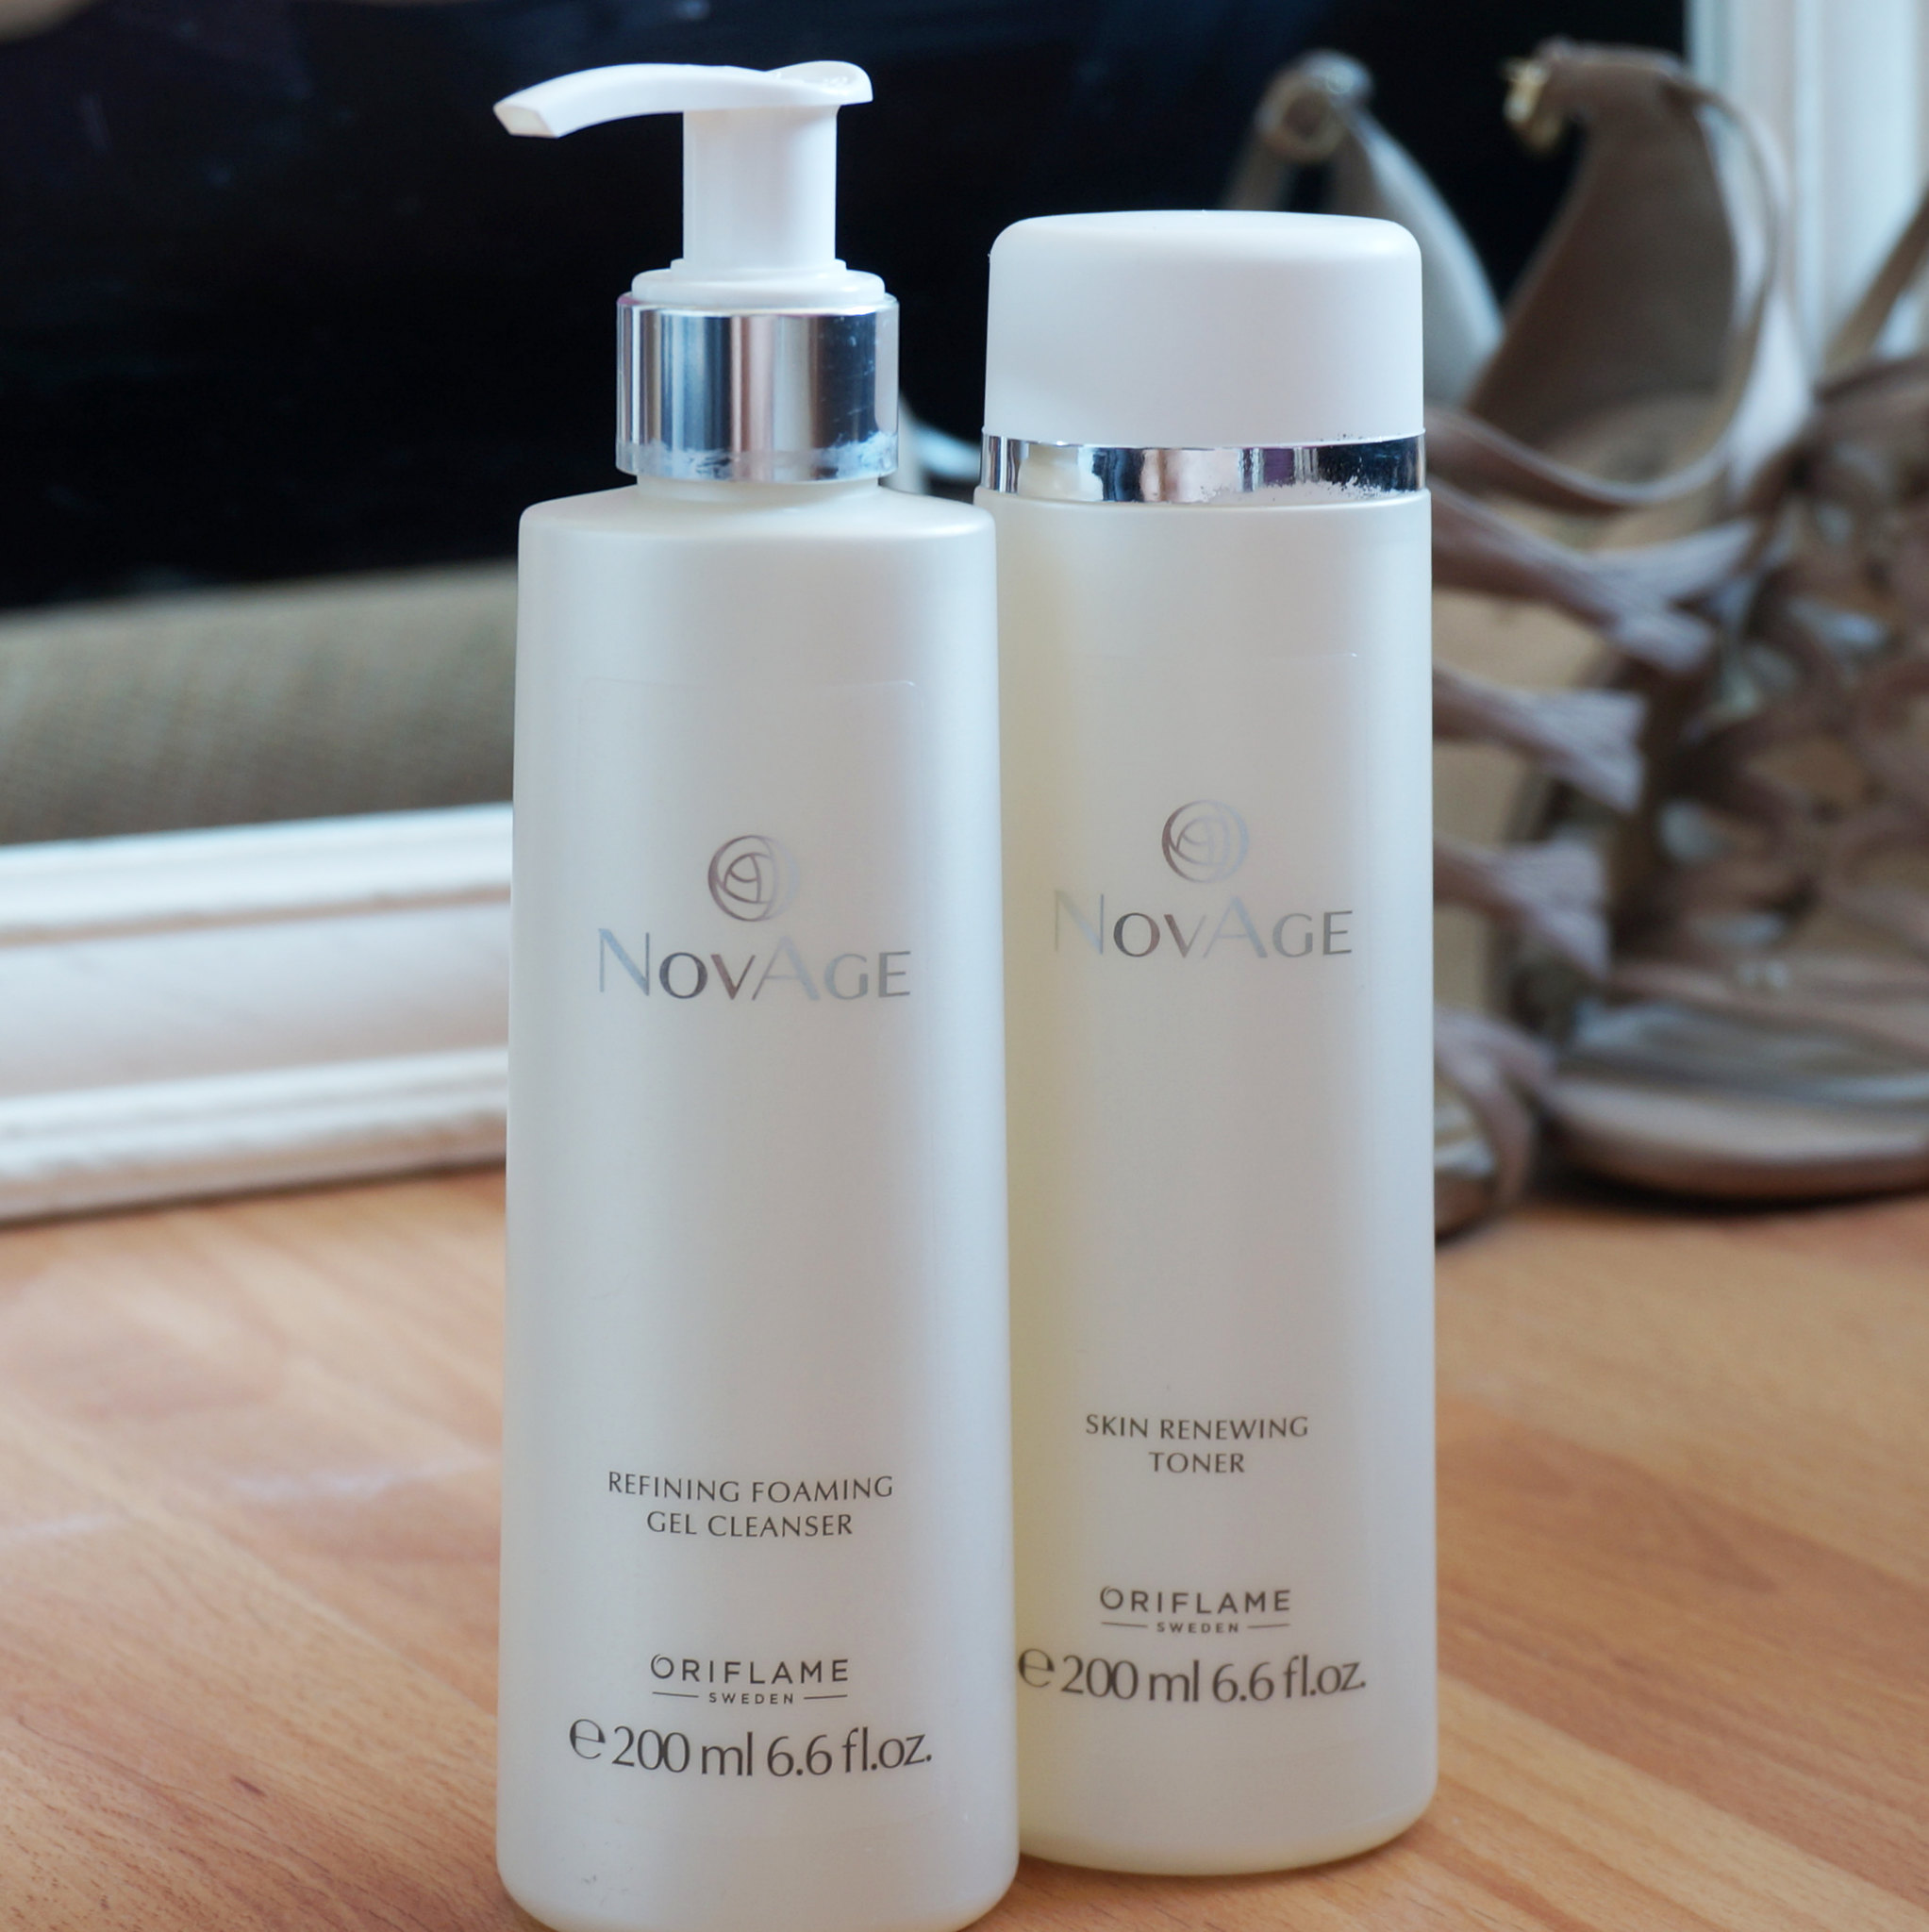 novage-oriflame-veido-prausiklis-tonikas-renewing-toner-facial-wash